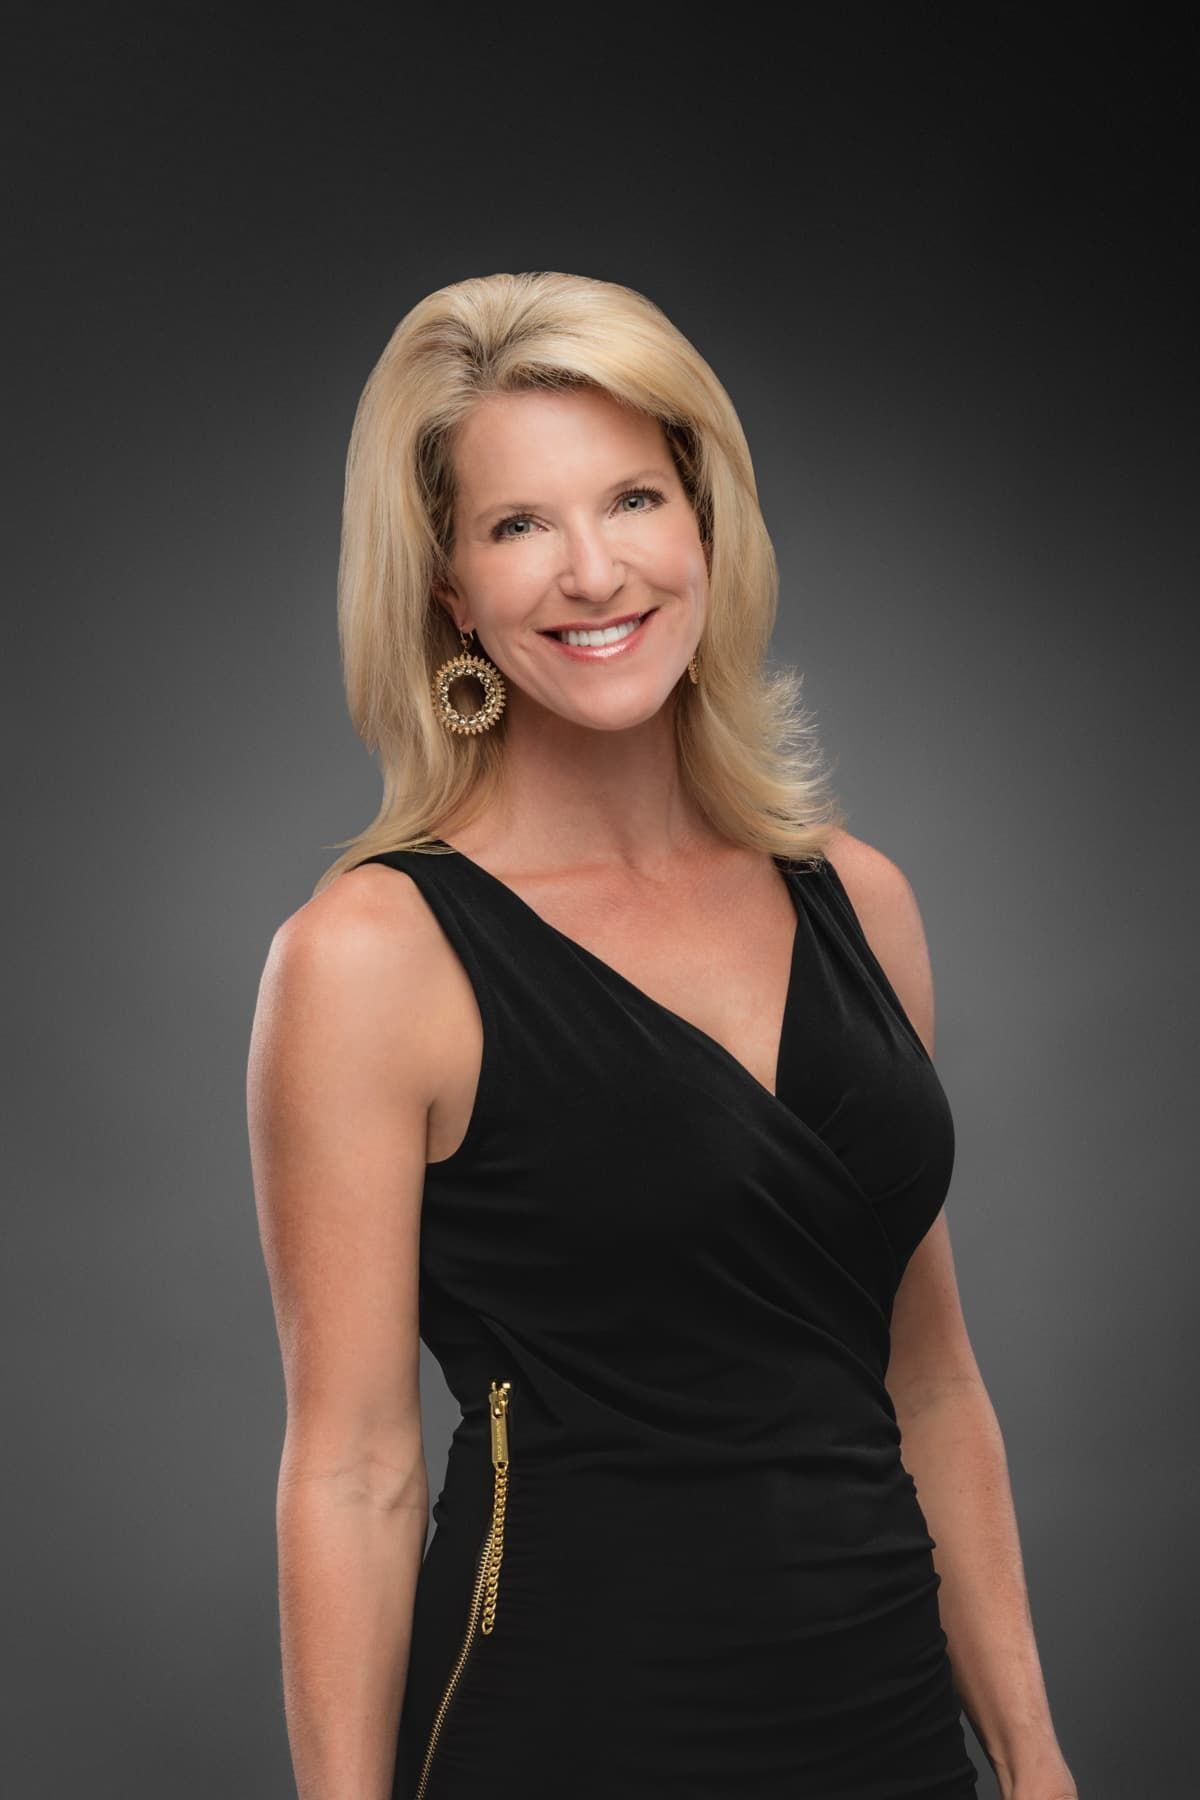 mobley md facial plastic surgery photo - 1